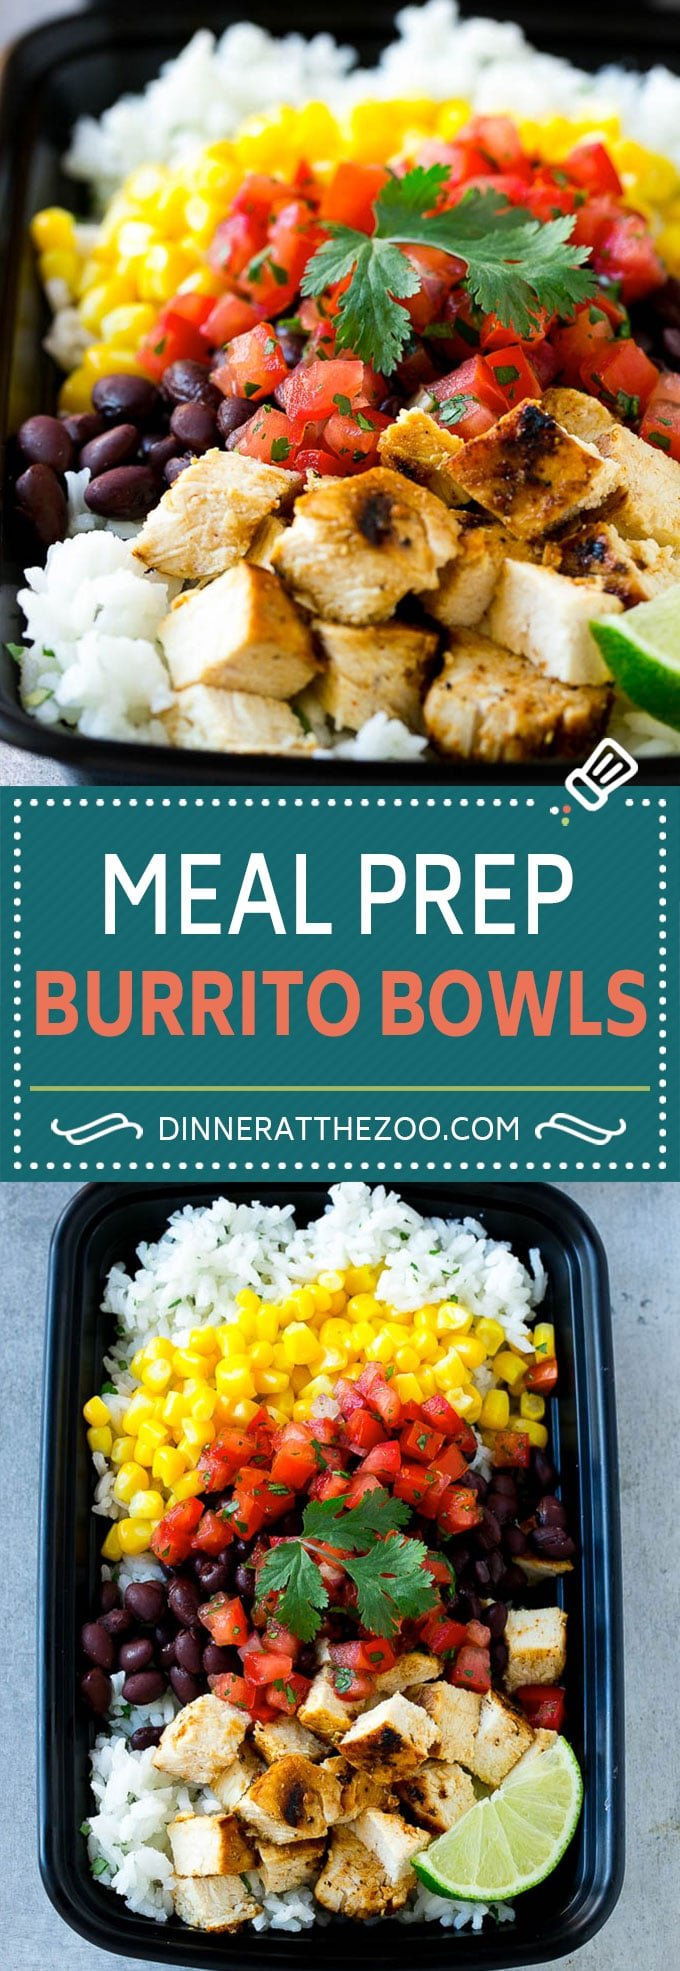 36 easy meal prep recipes dinner at the zoo meal prep burrito bowls chicken burrito bowls meal prep recipe burrito bowl recipe forumfinder Images